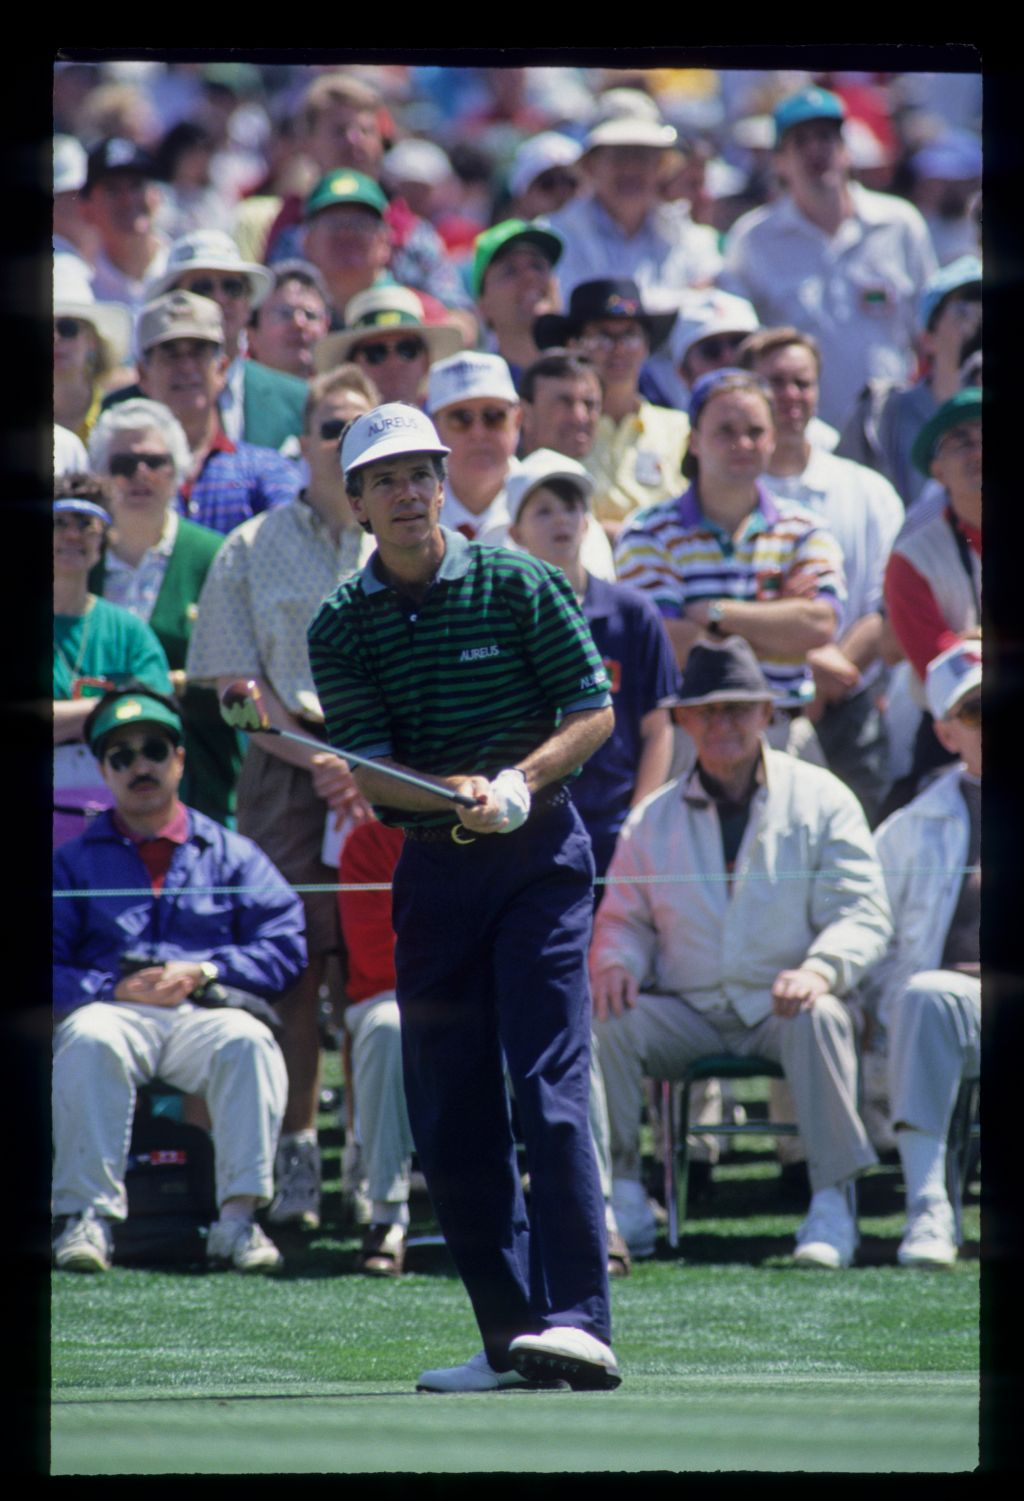 Larry Mize watching his drive closely during the 1993 Masters